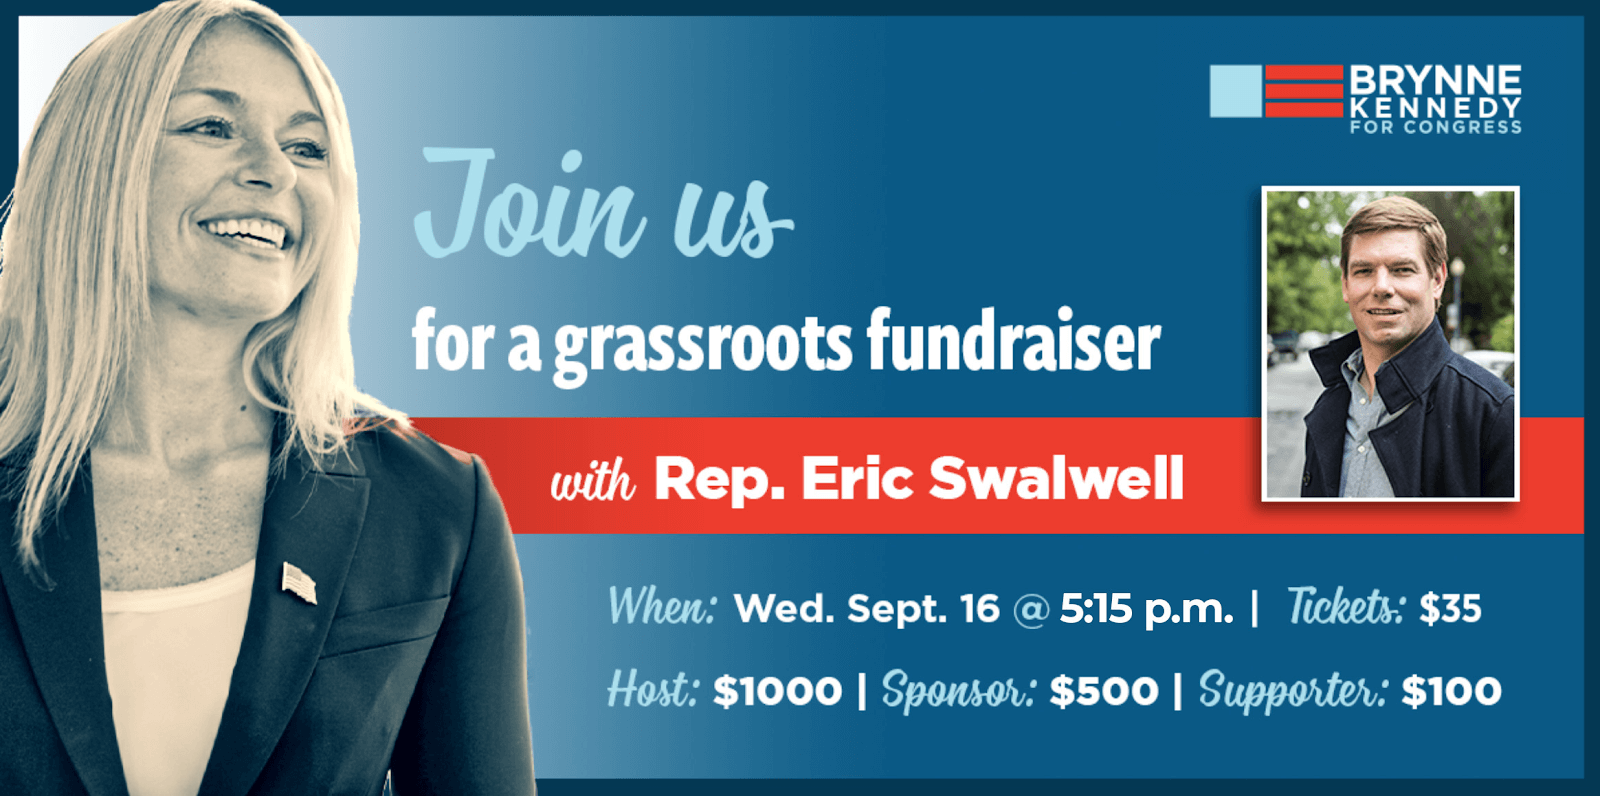 Join us for a grassroots fundraiser with Rep. Eric Swalwell When: September 16 at 5:30 PM Tickets: $35 Host: $1000 Sponsor: $500 Supporter: $100